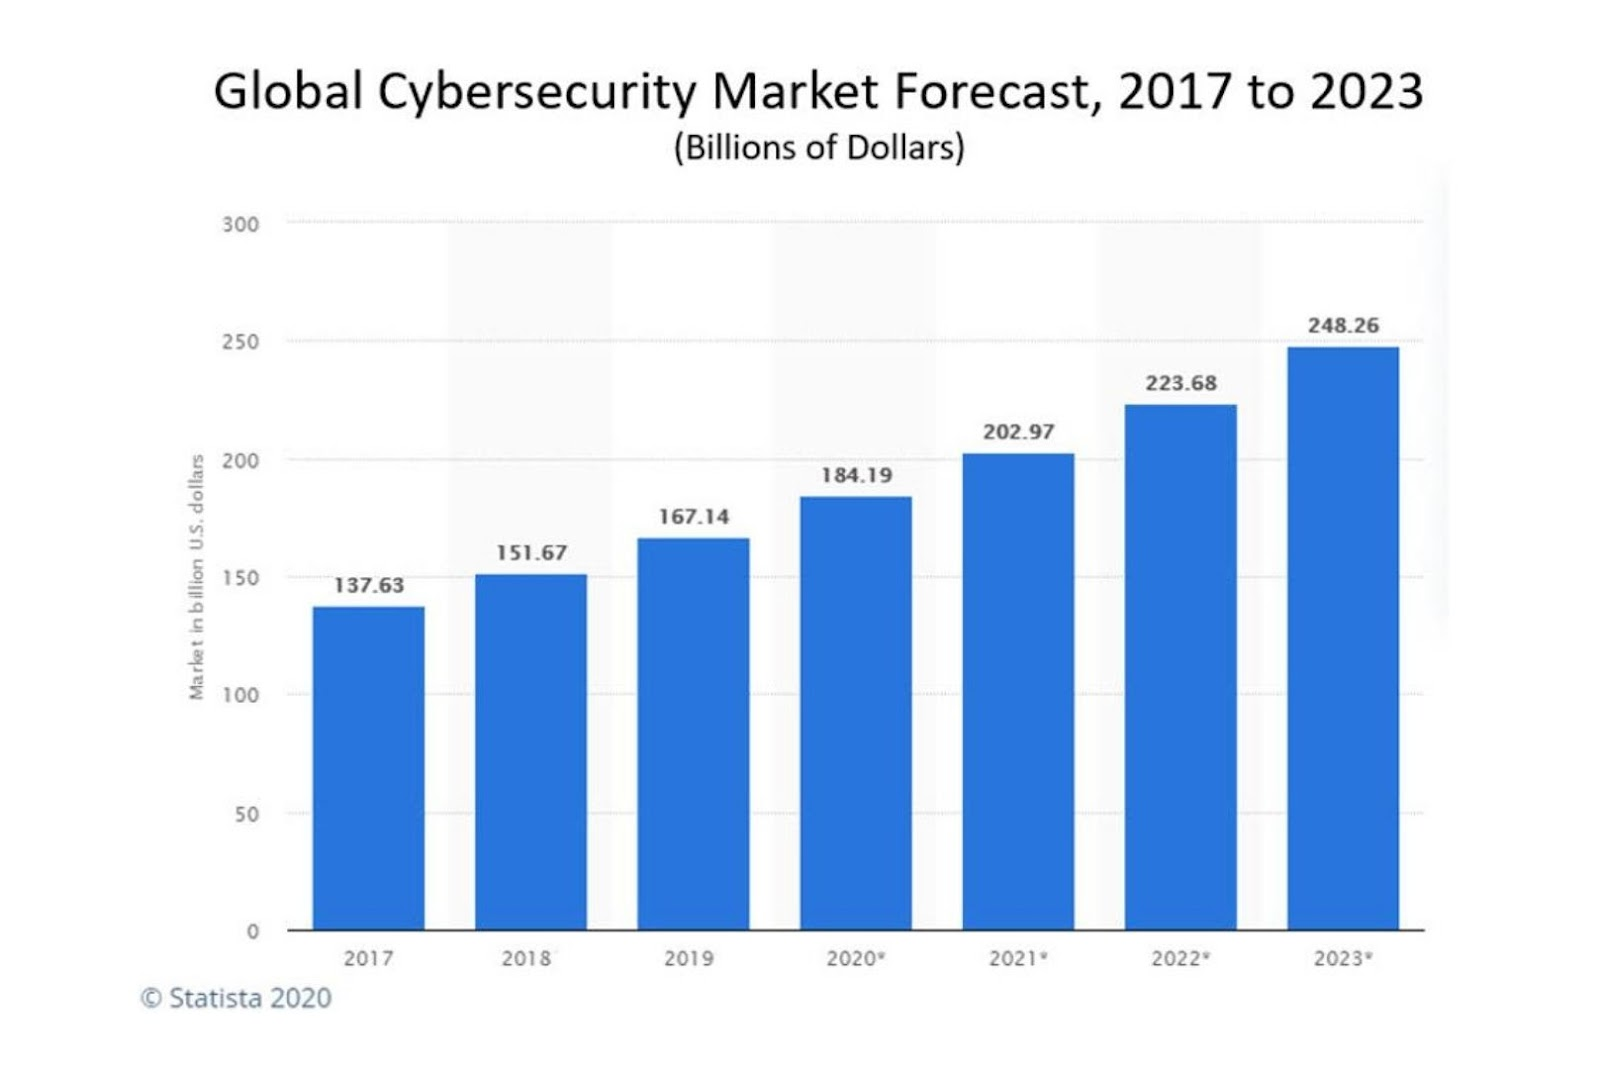 Global Cybersecurity Market Forecast 2017 to 2023